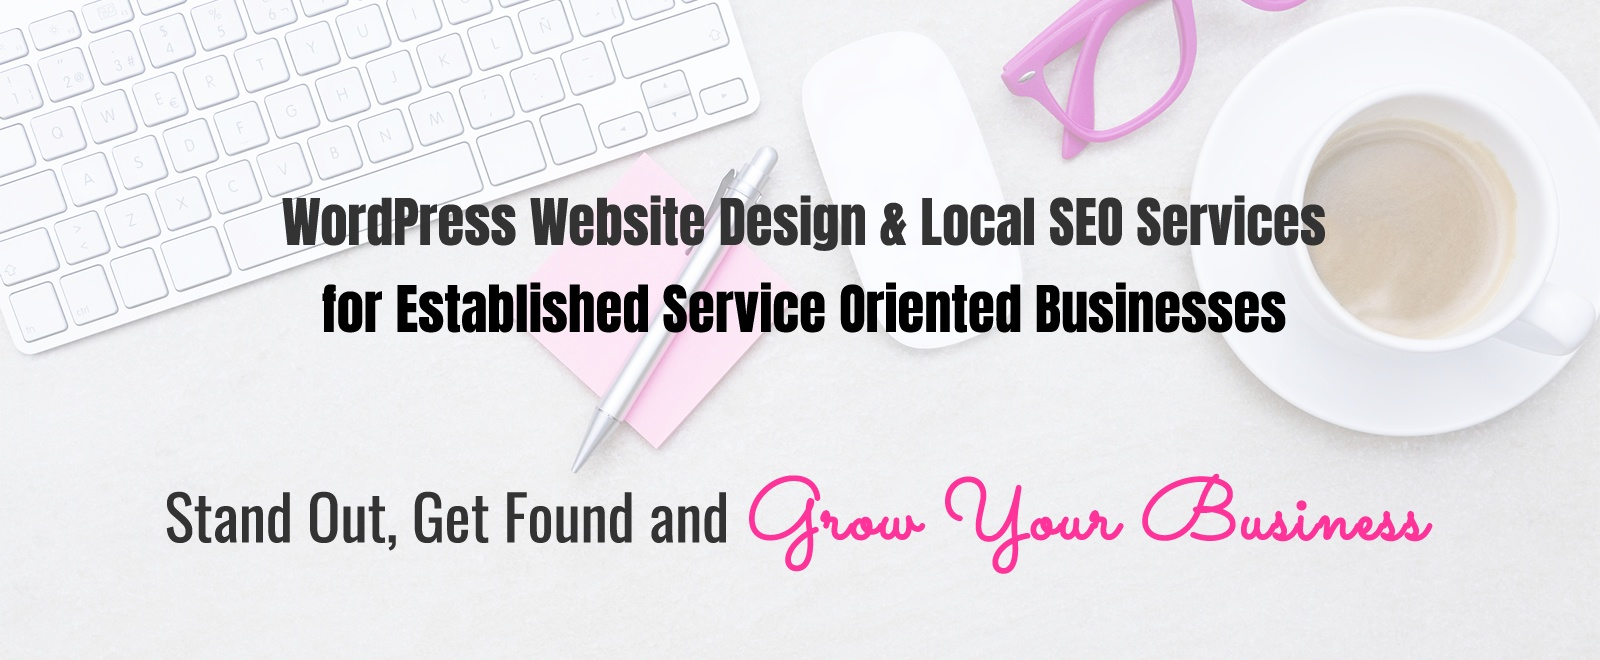 WordPress Website Design & Local SEO Services for established service oriented businesses  | Stand out, get found & Grow Your Business